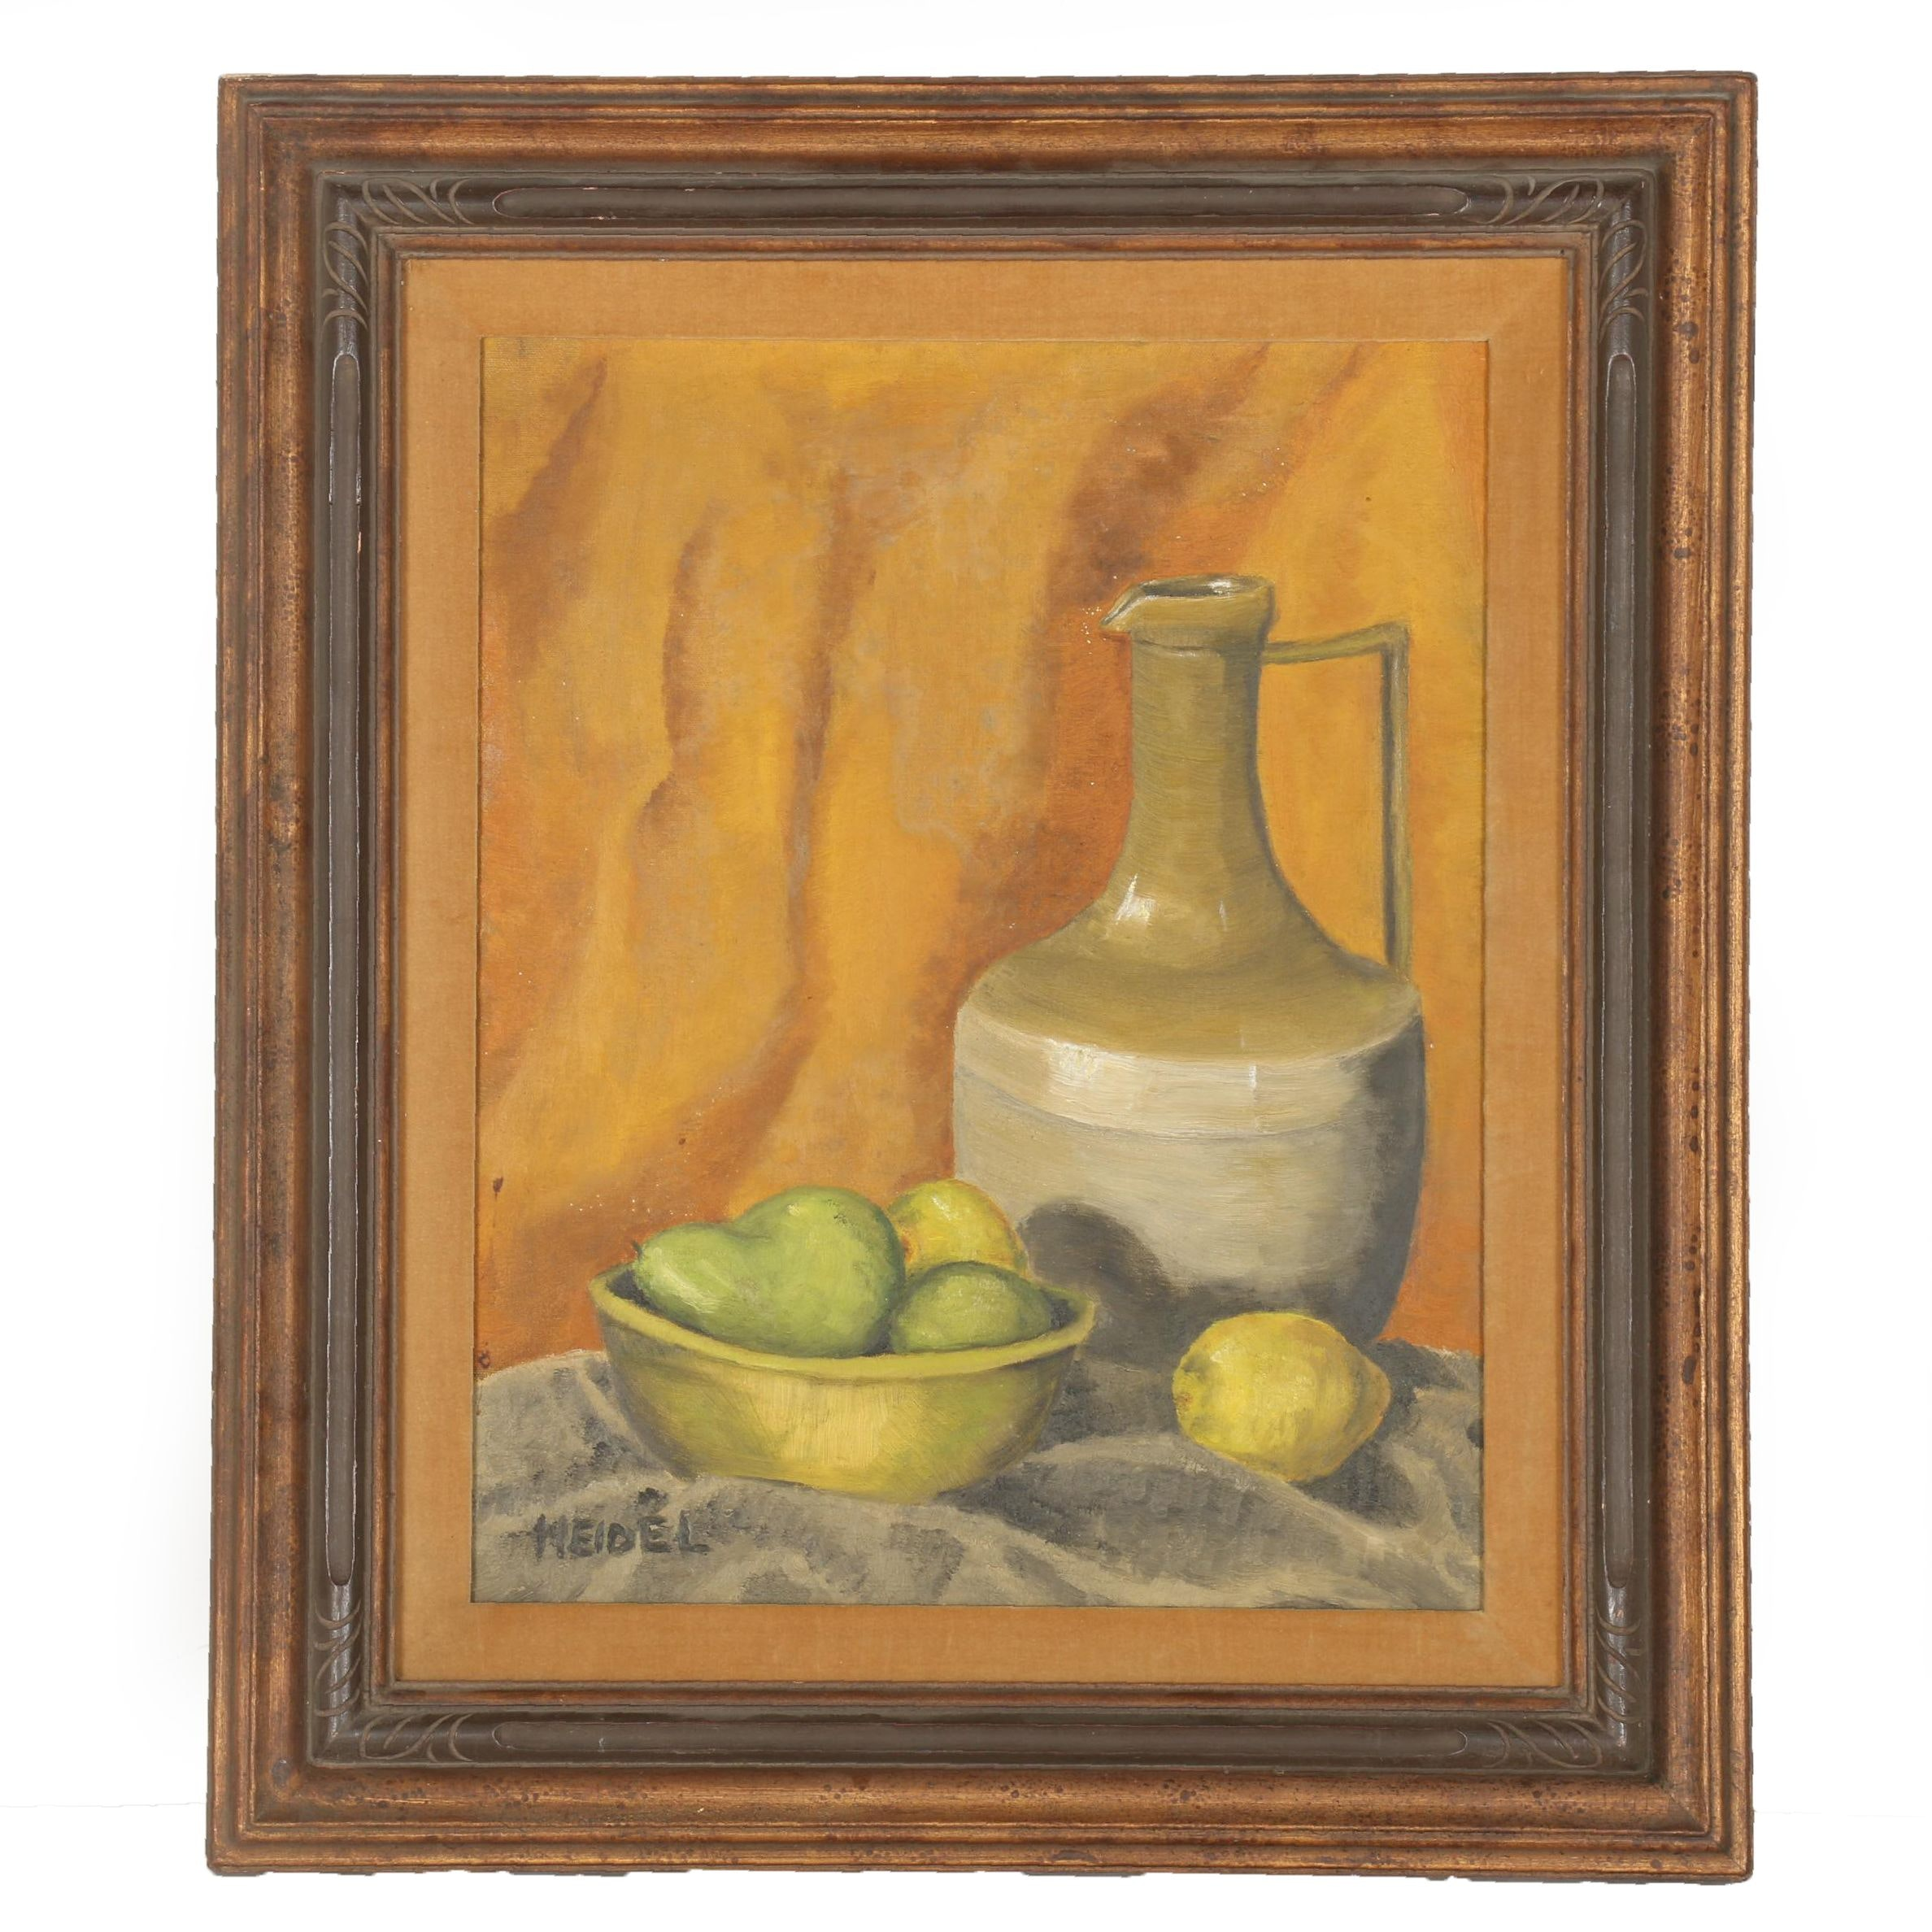 Heidel Oil Painting on Canvas Board of Still Life